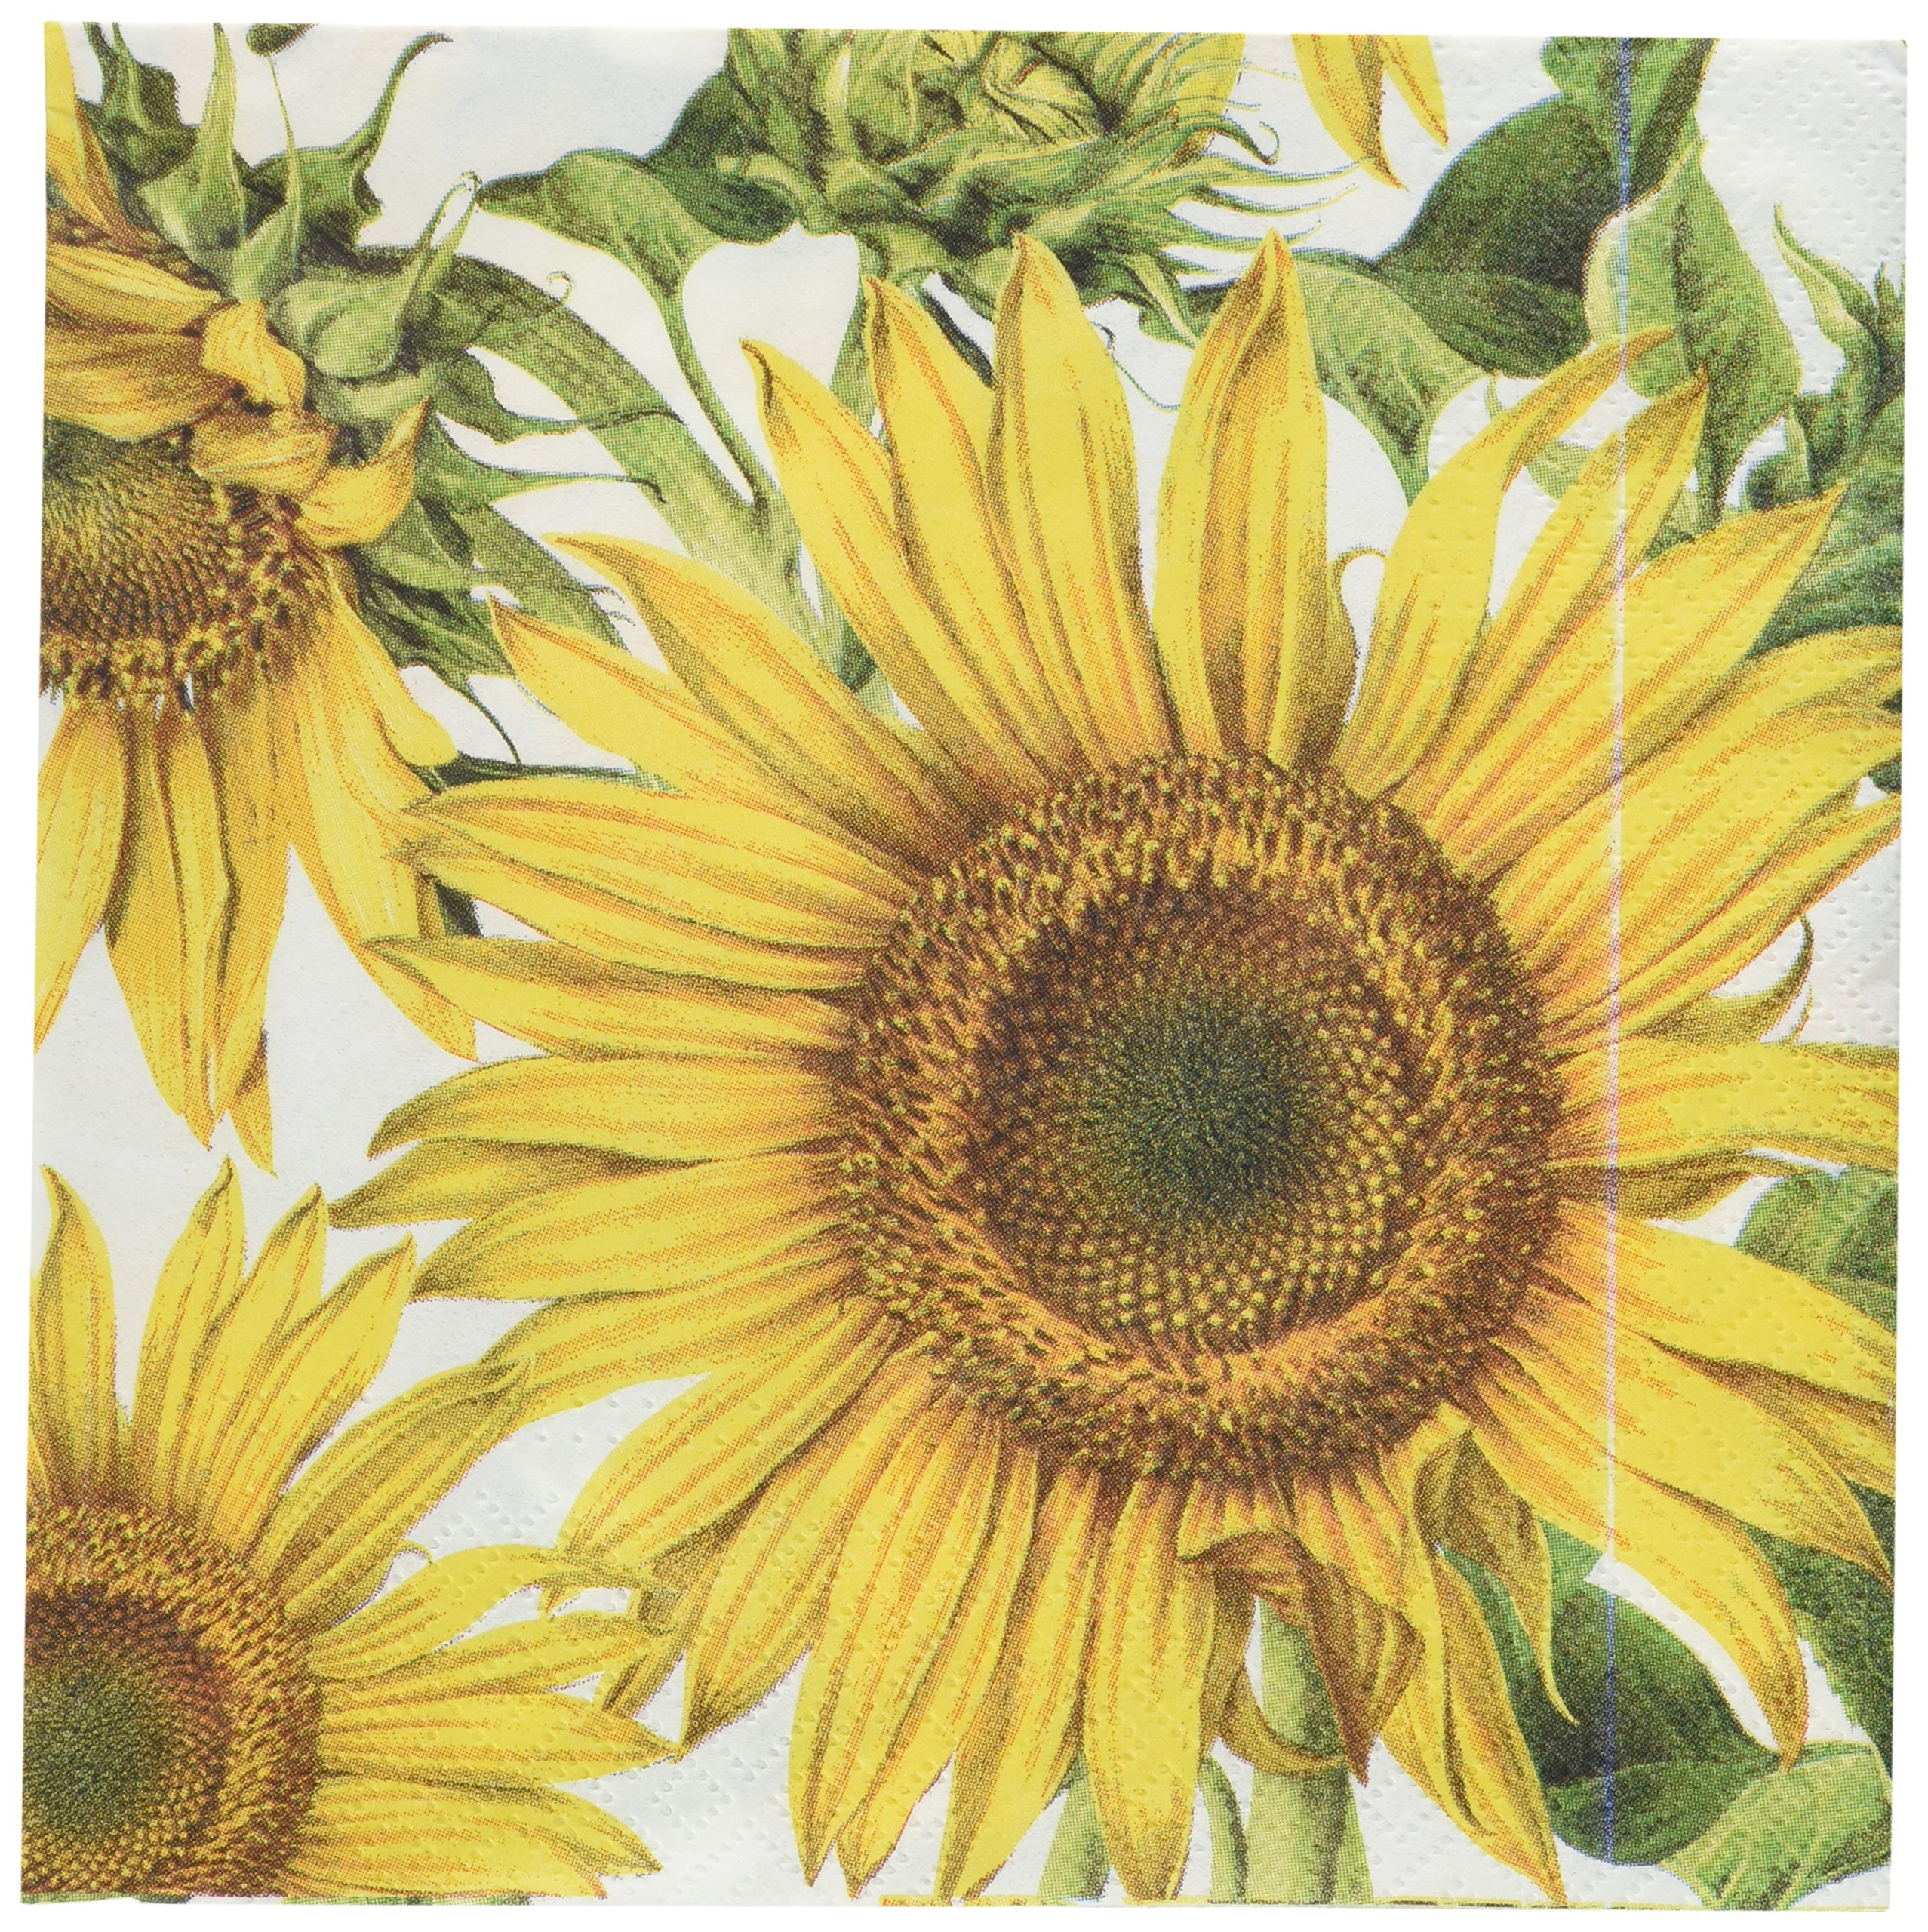 Abbott Collection Jumbo Sunflower Paper Napkins, Large (20 pack)